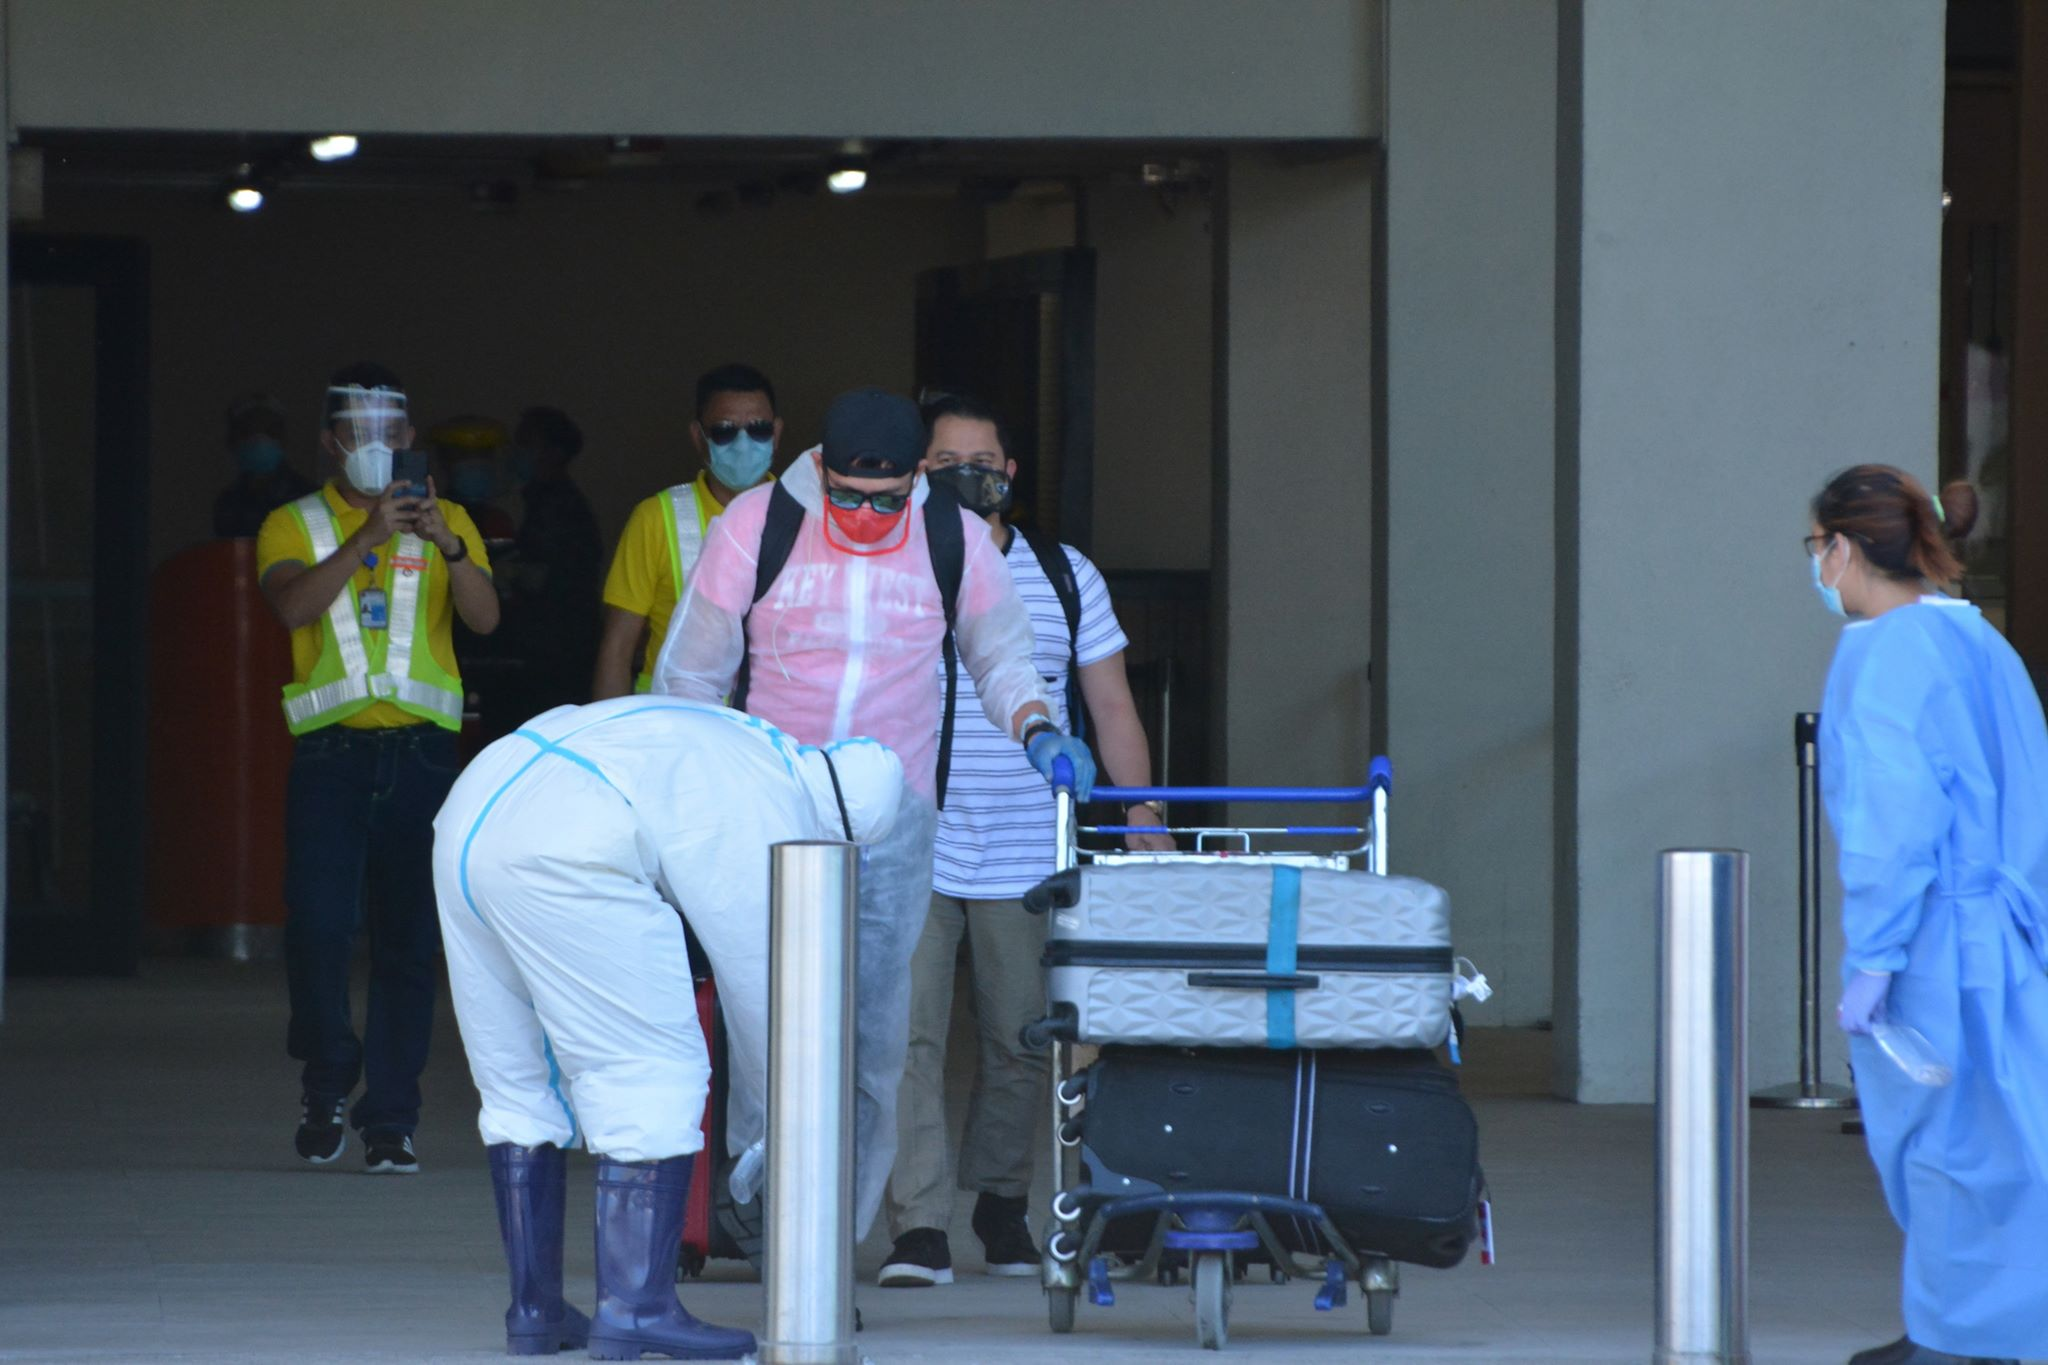 OFWS NOW UNDERGO 5-DAY QUARANTINE IN CEBU